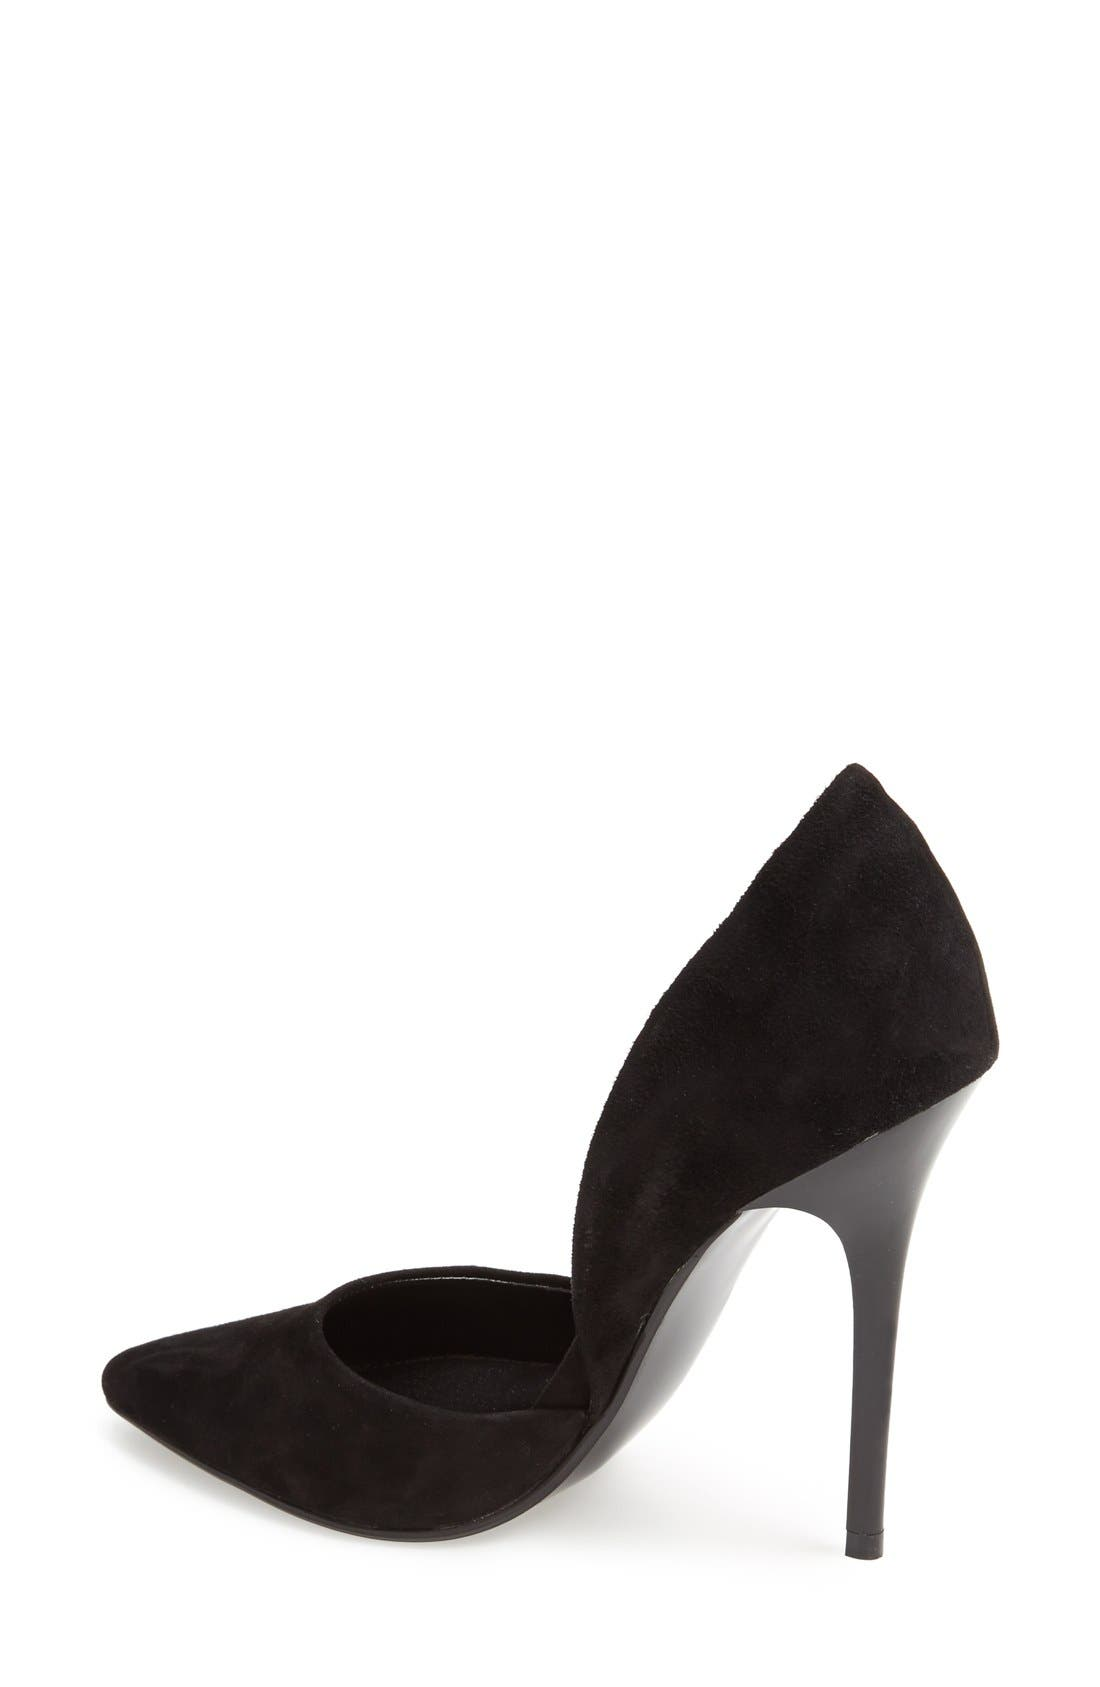 'Varcityy' Pointy Toe Pump,                             Alternate thumbnail 2, color,                             006